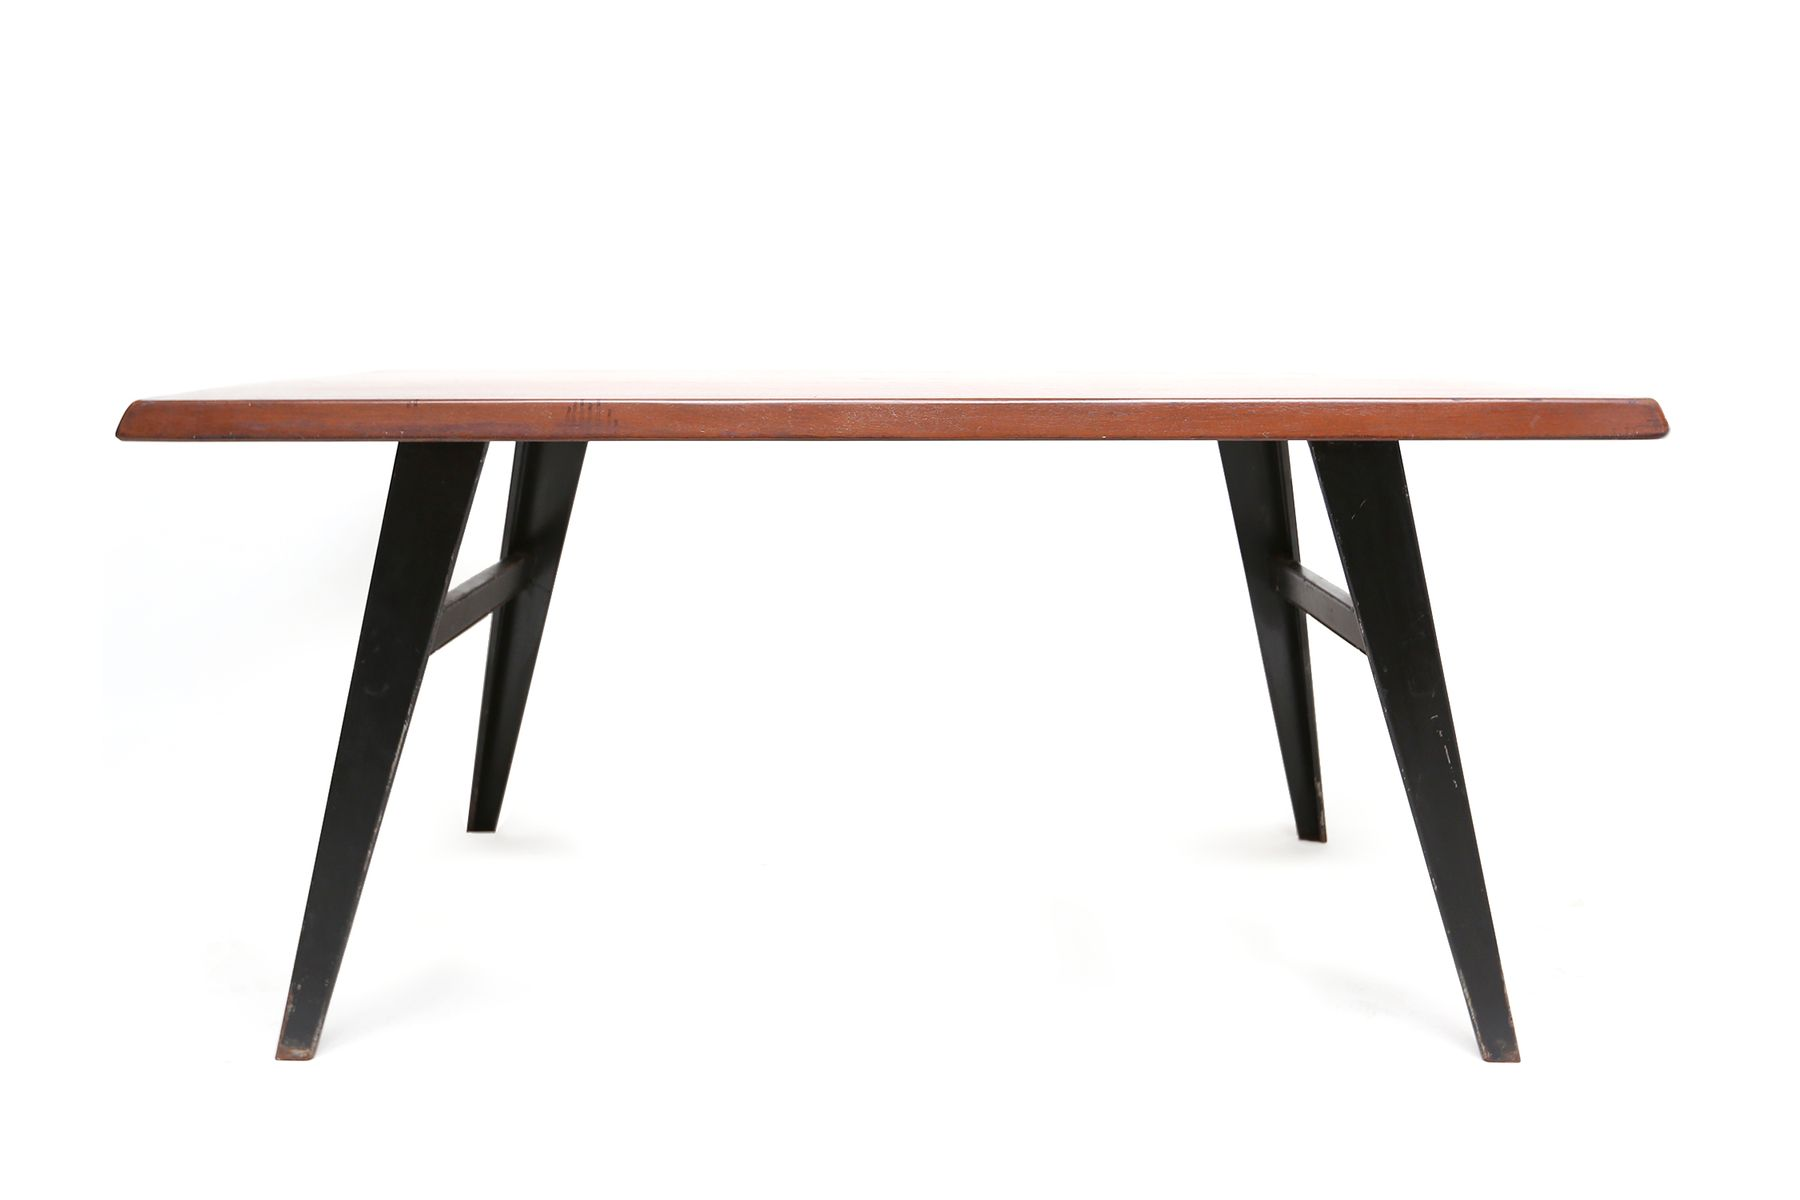 Table de salle manger industrielle france 1950s en vente sur pamono - Solde table a manger ...